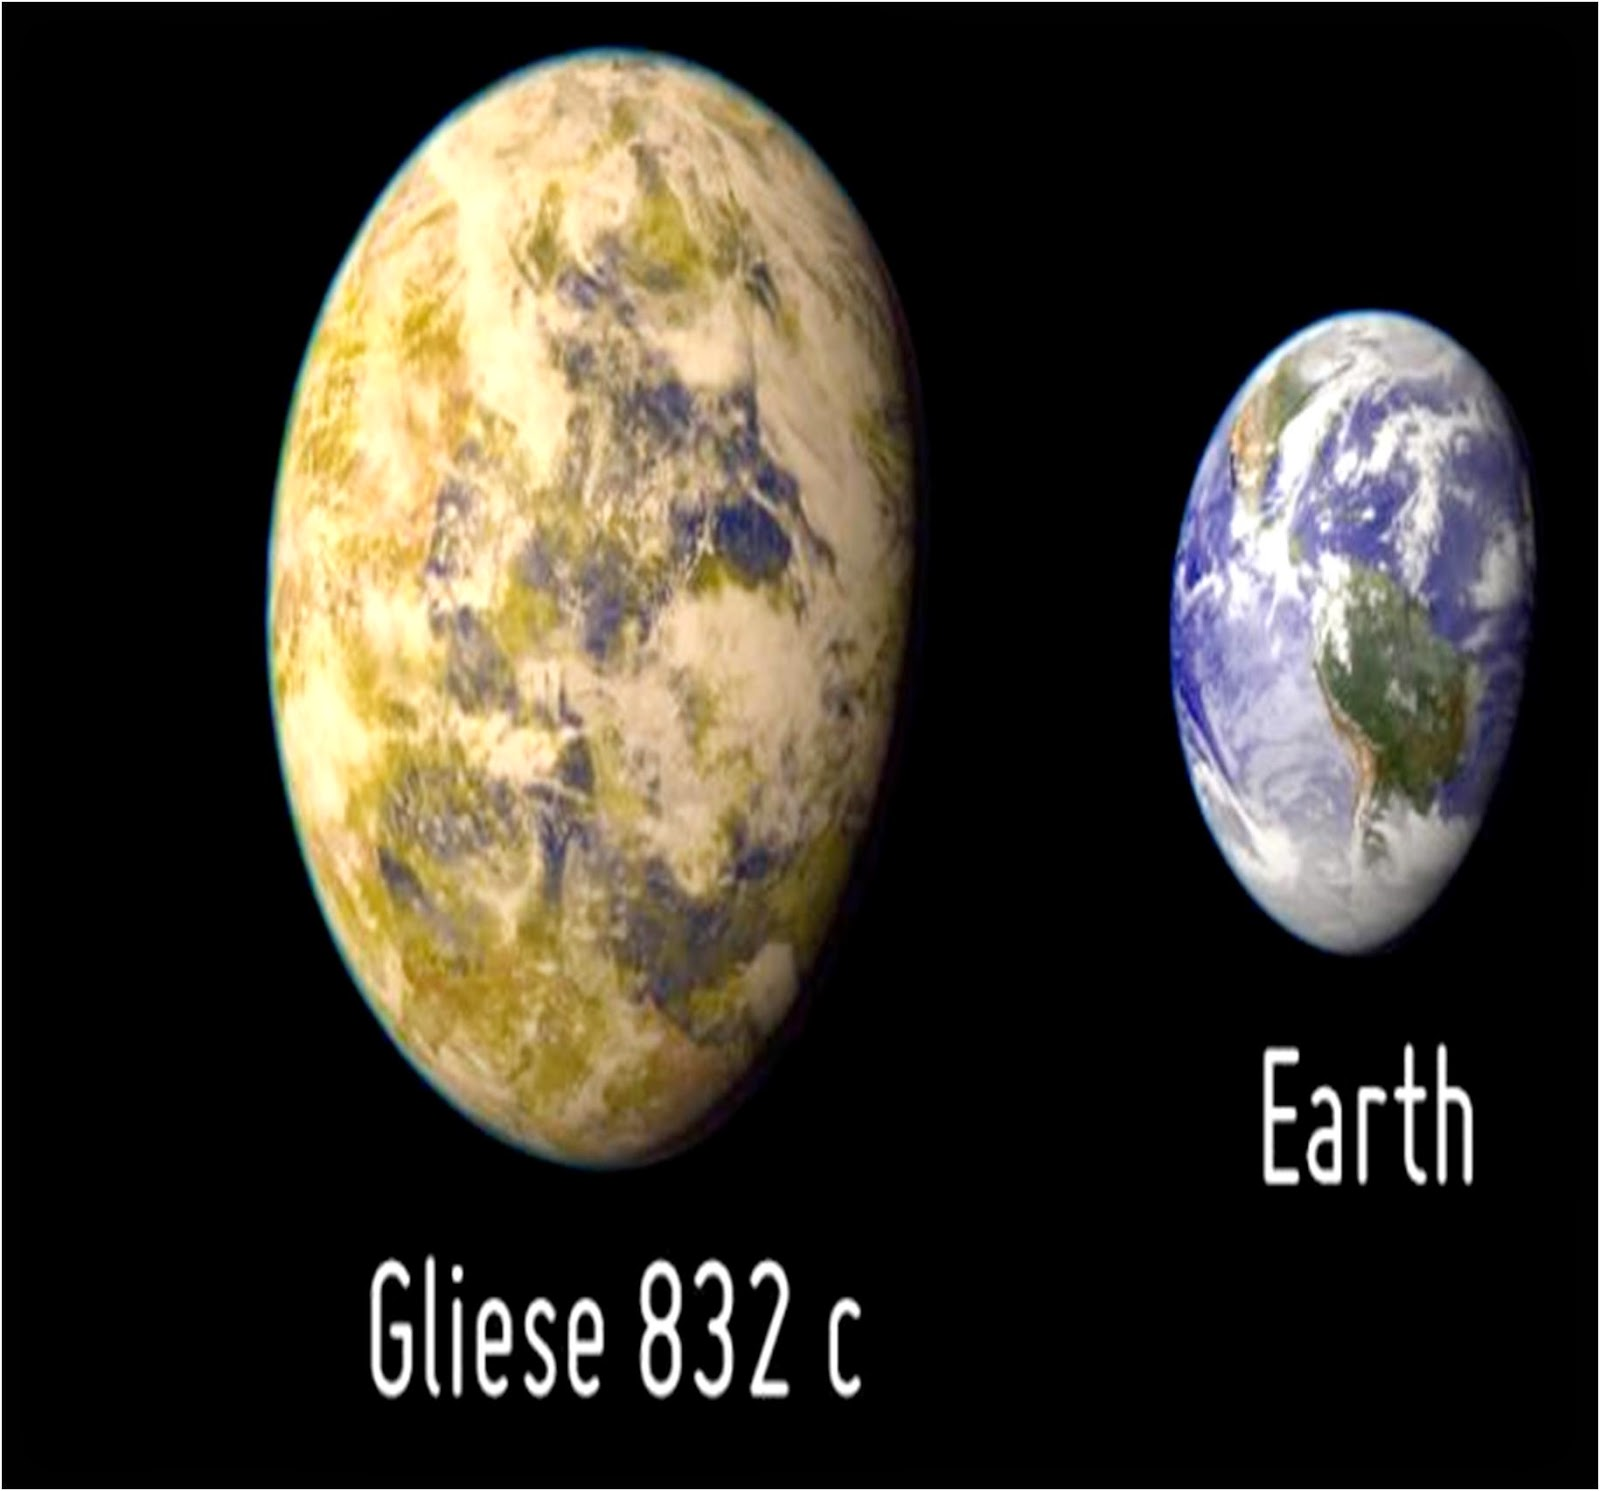 gliese 832 moons - photo #3